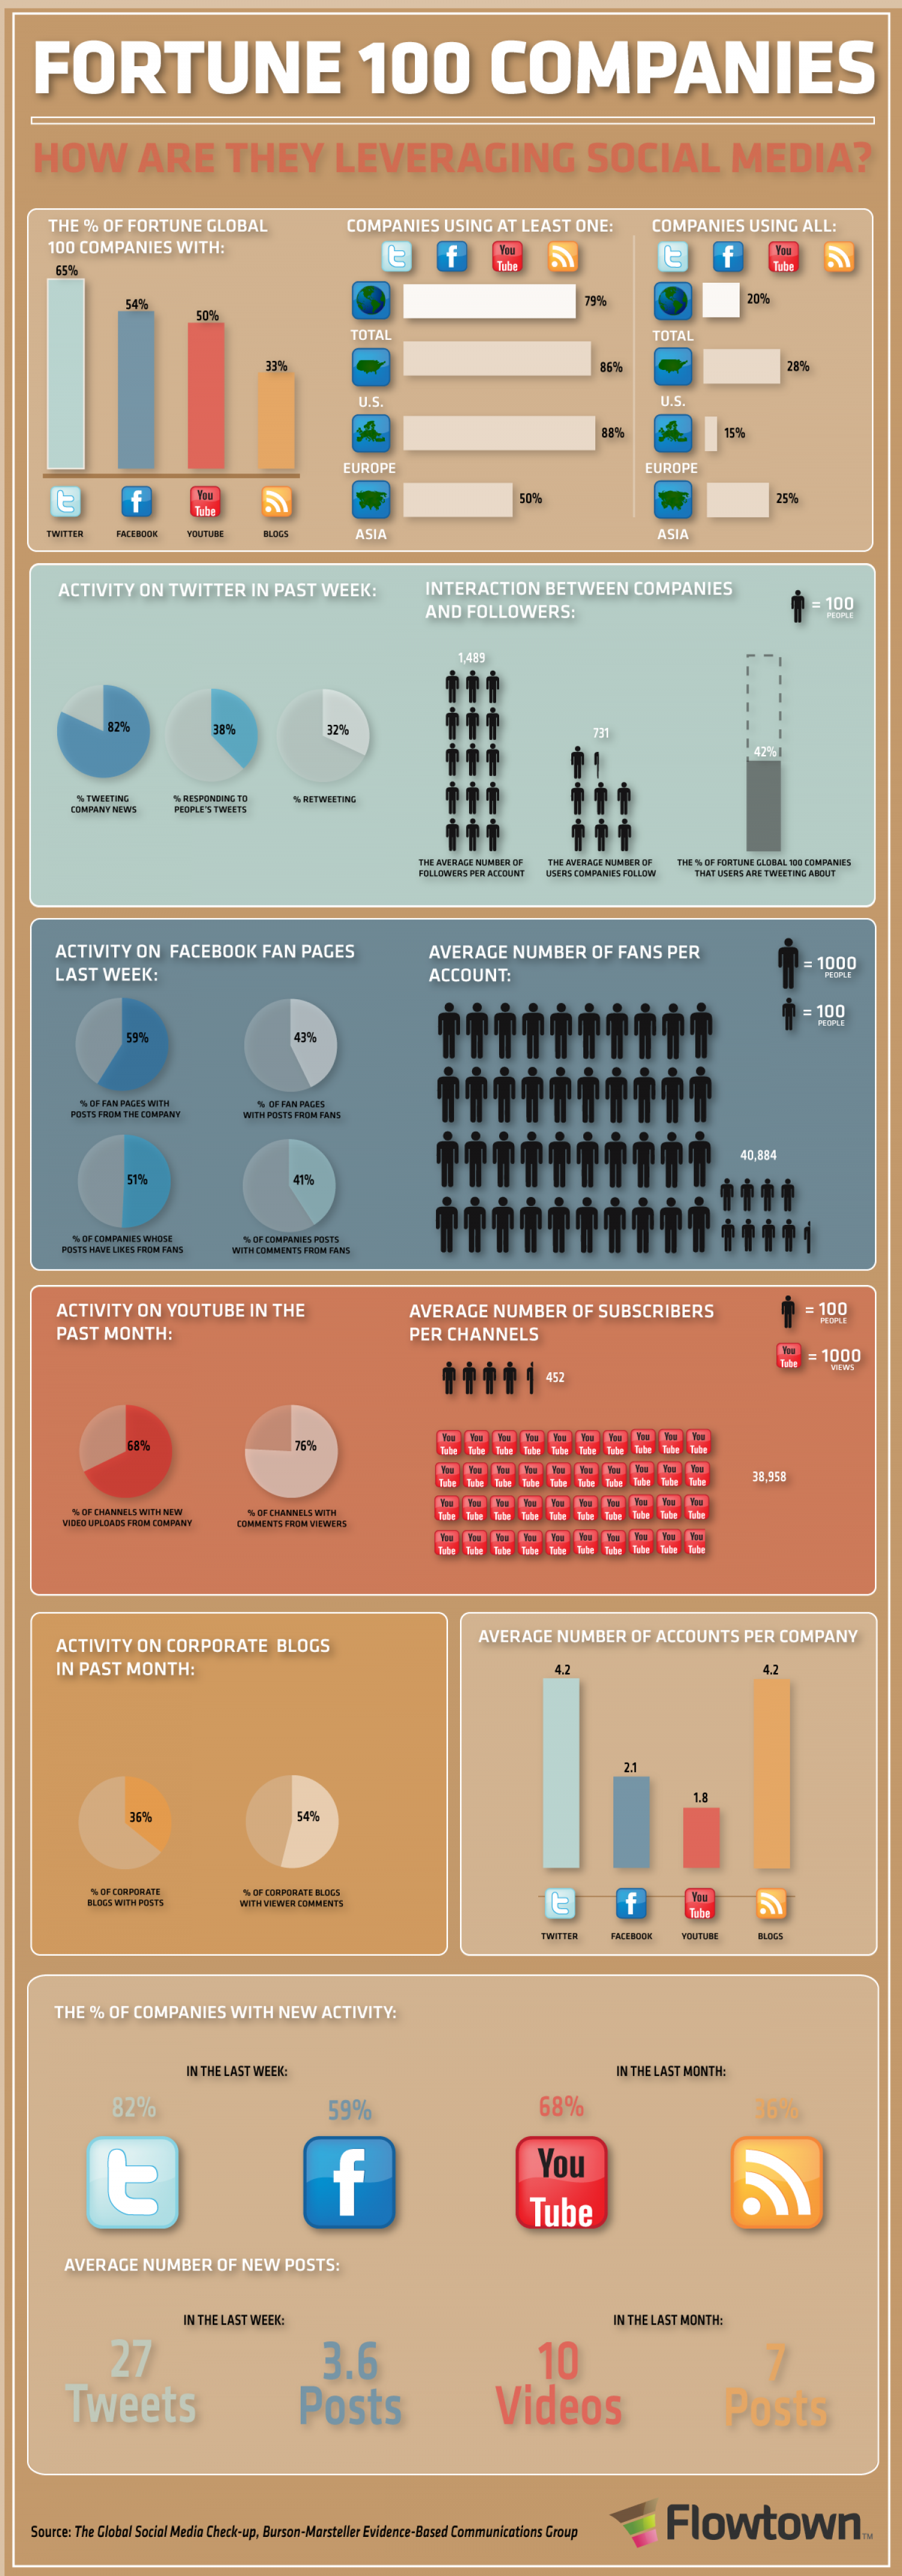 Fortune 100 Companies: How Are They Leveraging Social Media?  Infographic